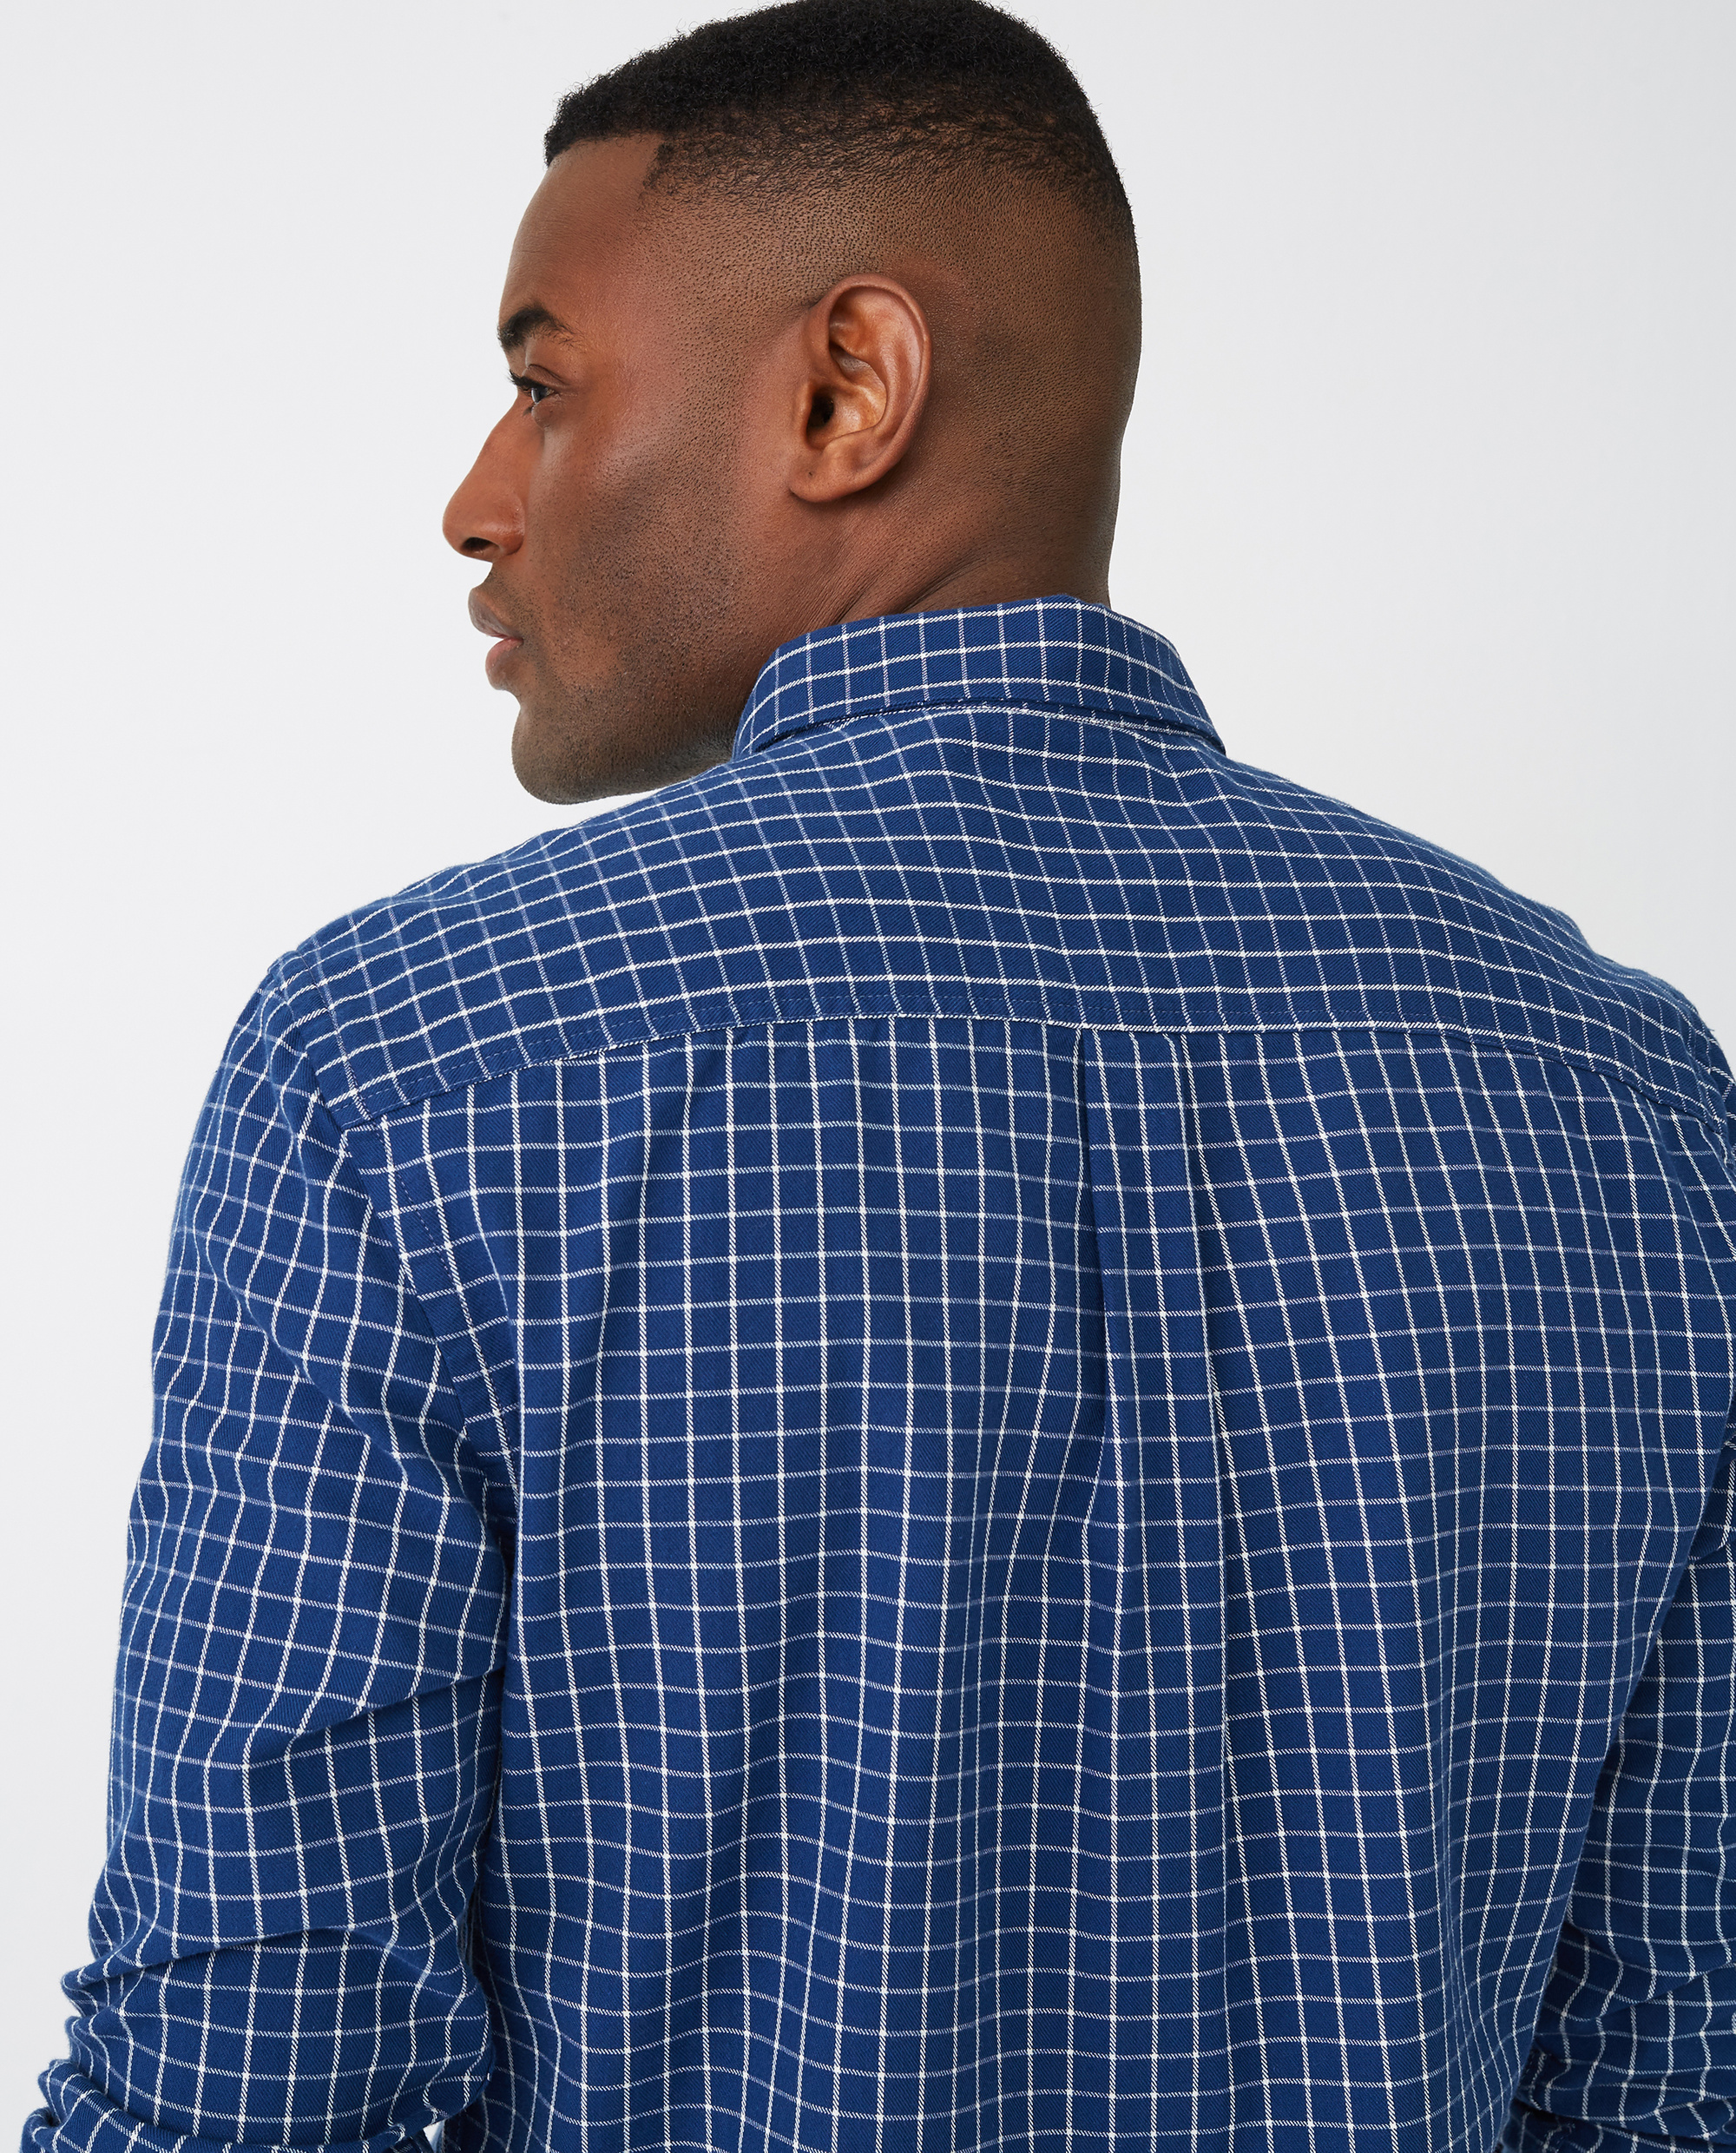 Peter Lt Flannel Shirt, Blue/White Check